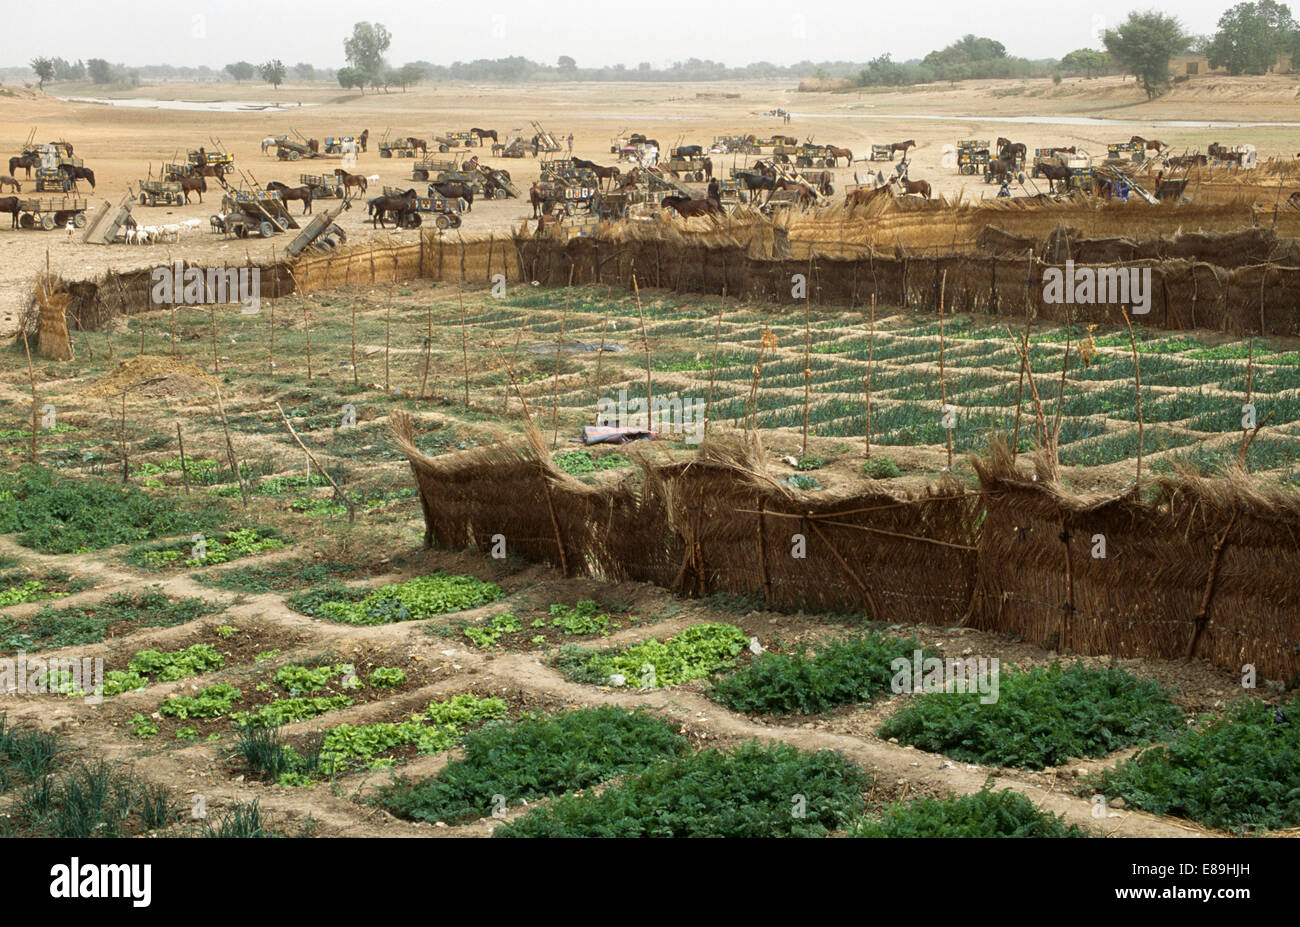 Vegetable gardens and market carts near the River Bani in Djenne, Mali - Stock Image